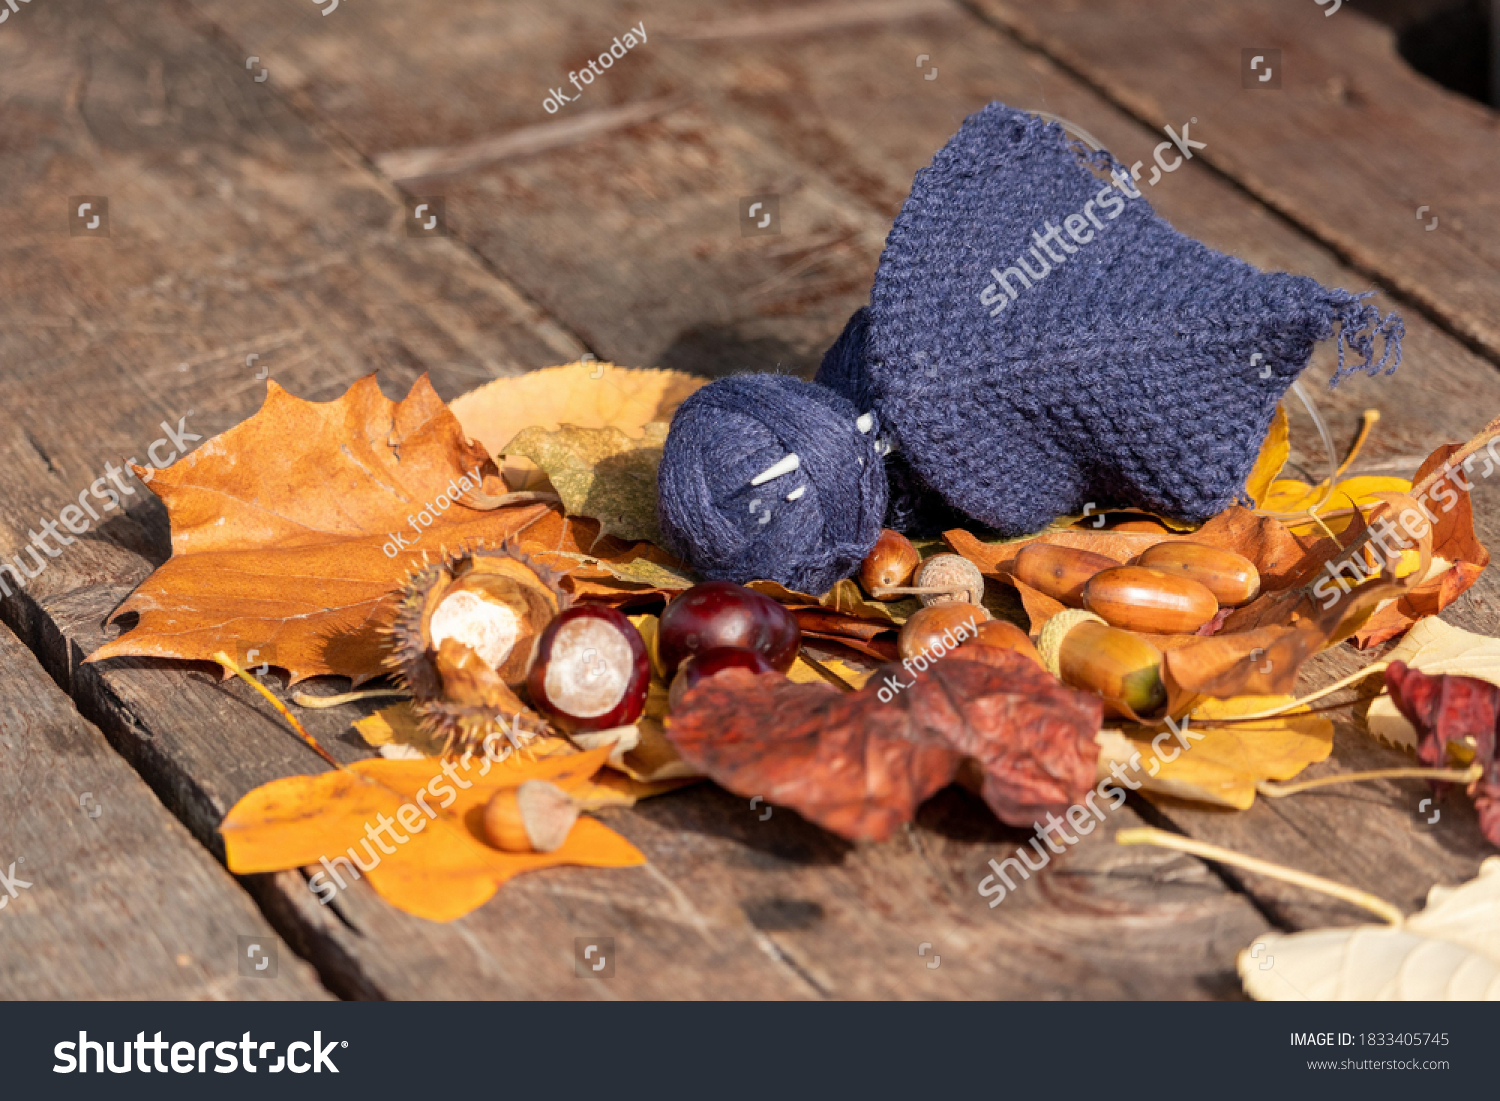 Autumn plot: a ball of dark blue threads and a started knitted product on knitting needles against a background of ripe acorns with oak and linden leaves on a wooden board